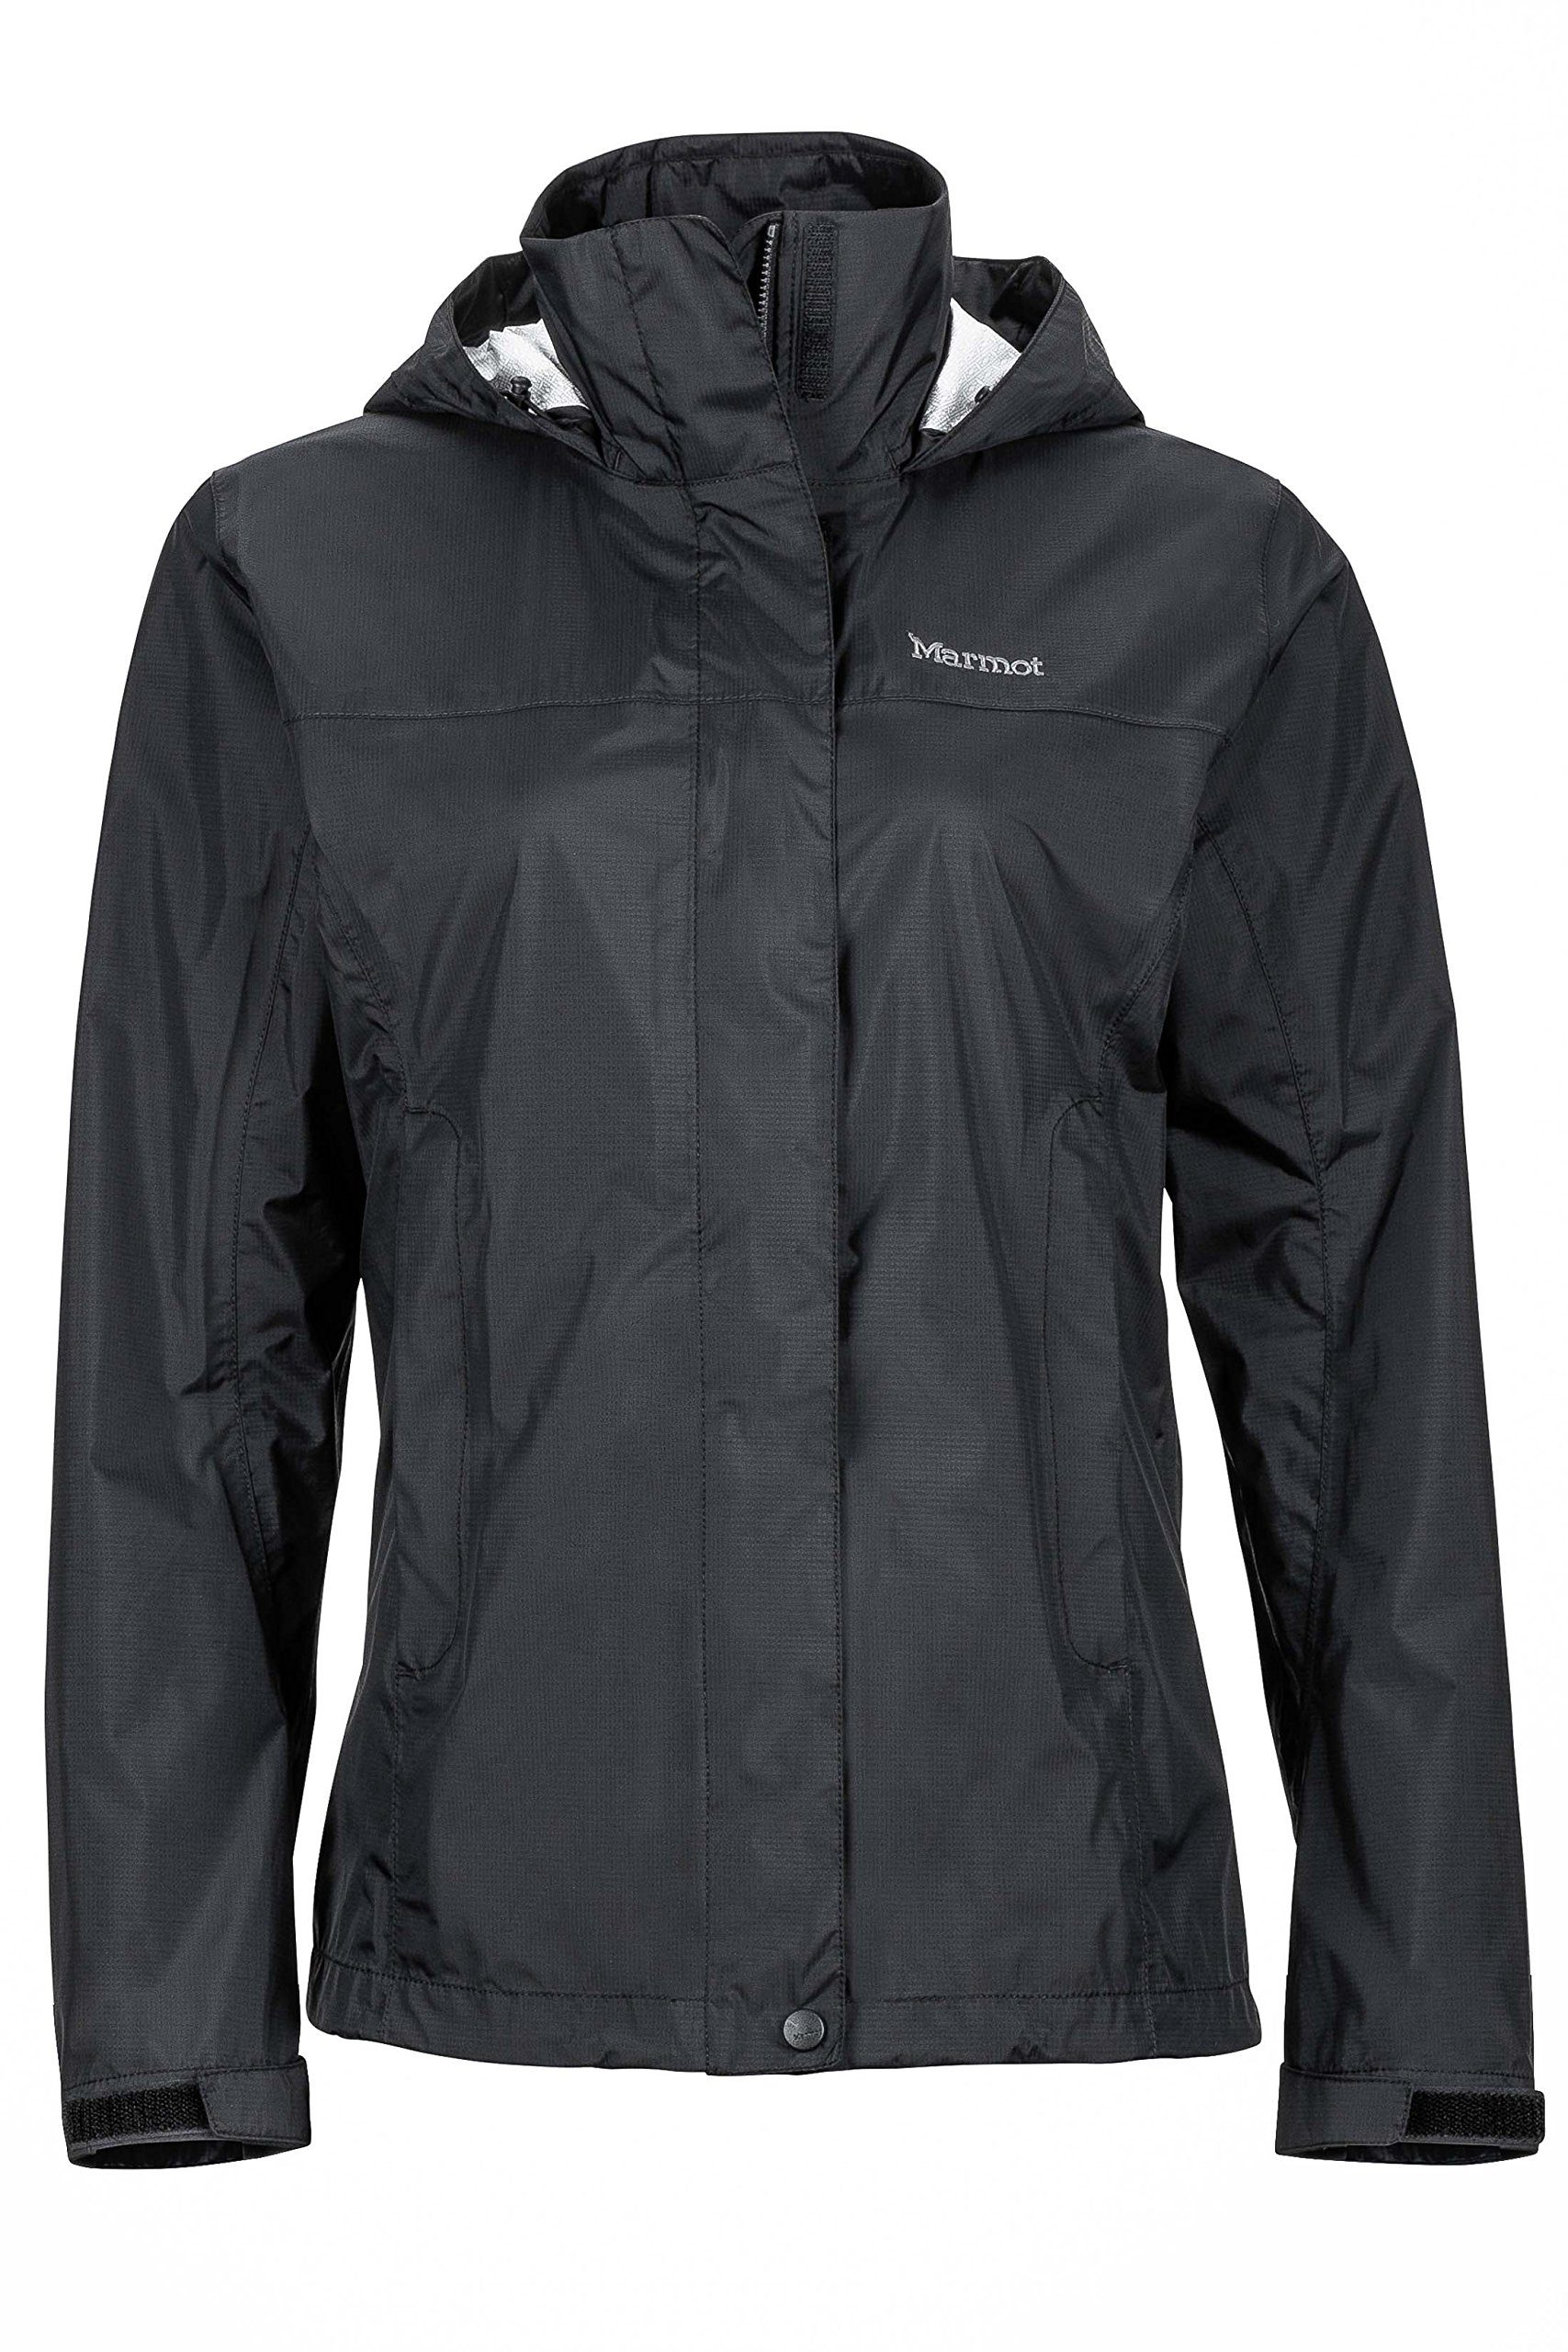 Marmot PreCip Women's Lightweight Waterproof Rain Jacket, Black, X-Large by Marmot